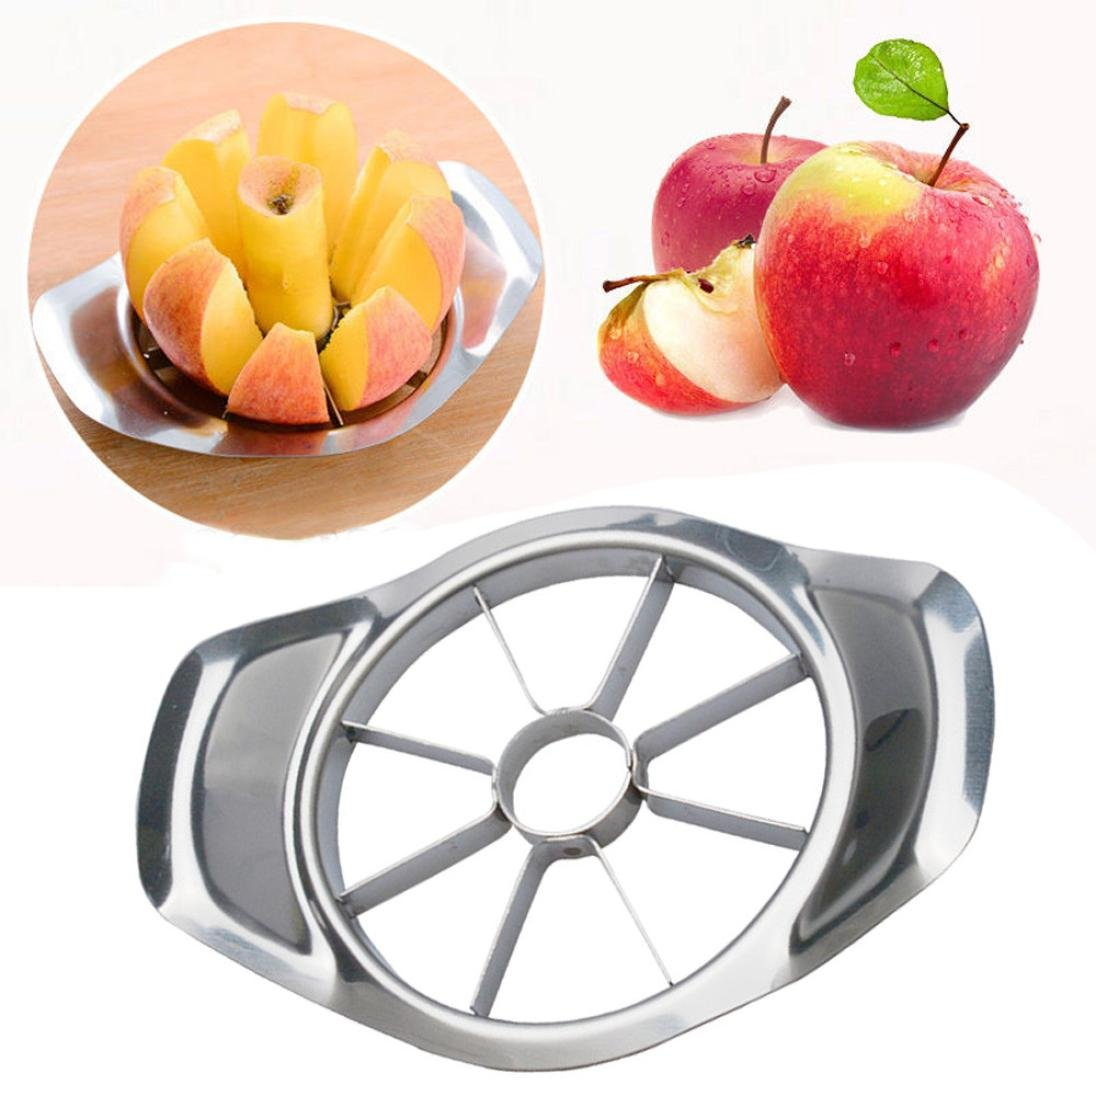 Fruit Cutter,Byste New Apple Cutter Pear Divider Peeler Stainless Steel Easy Cut